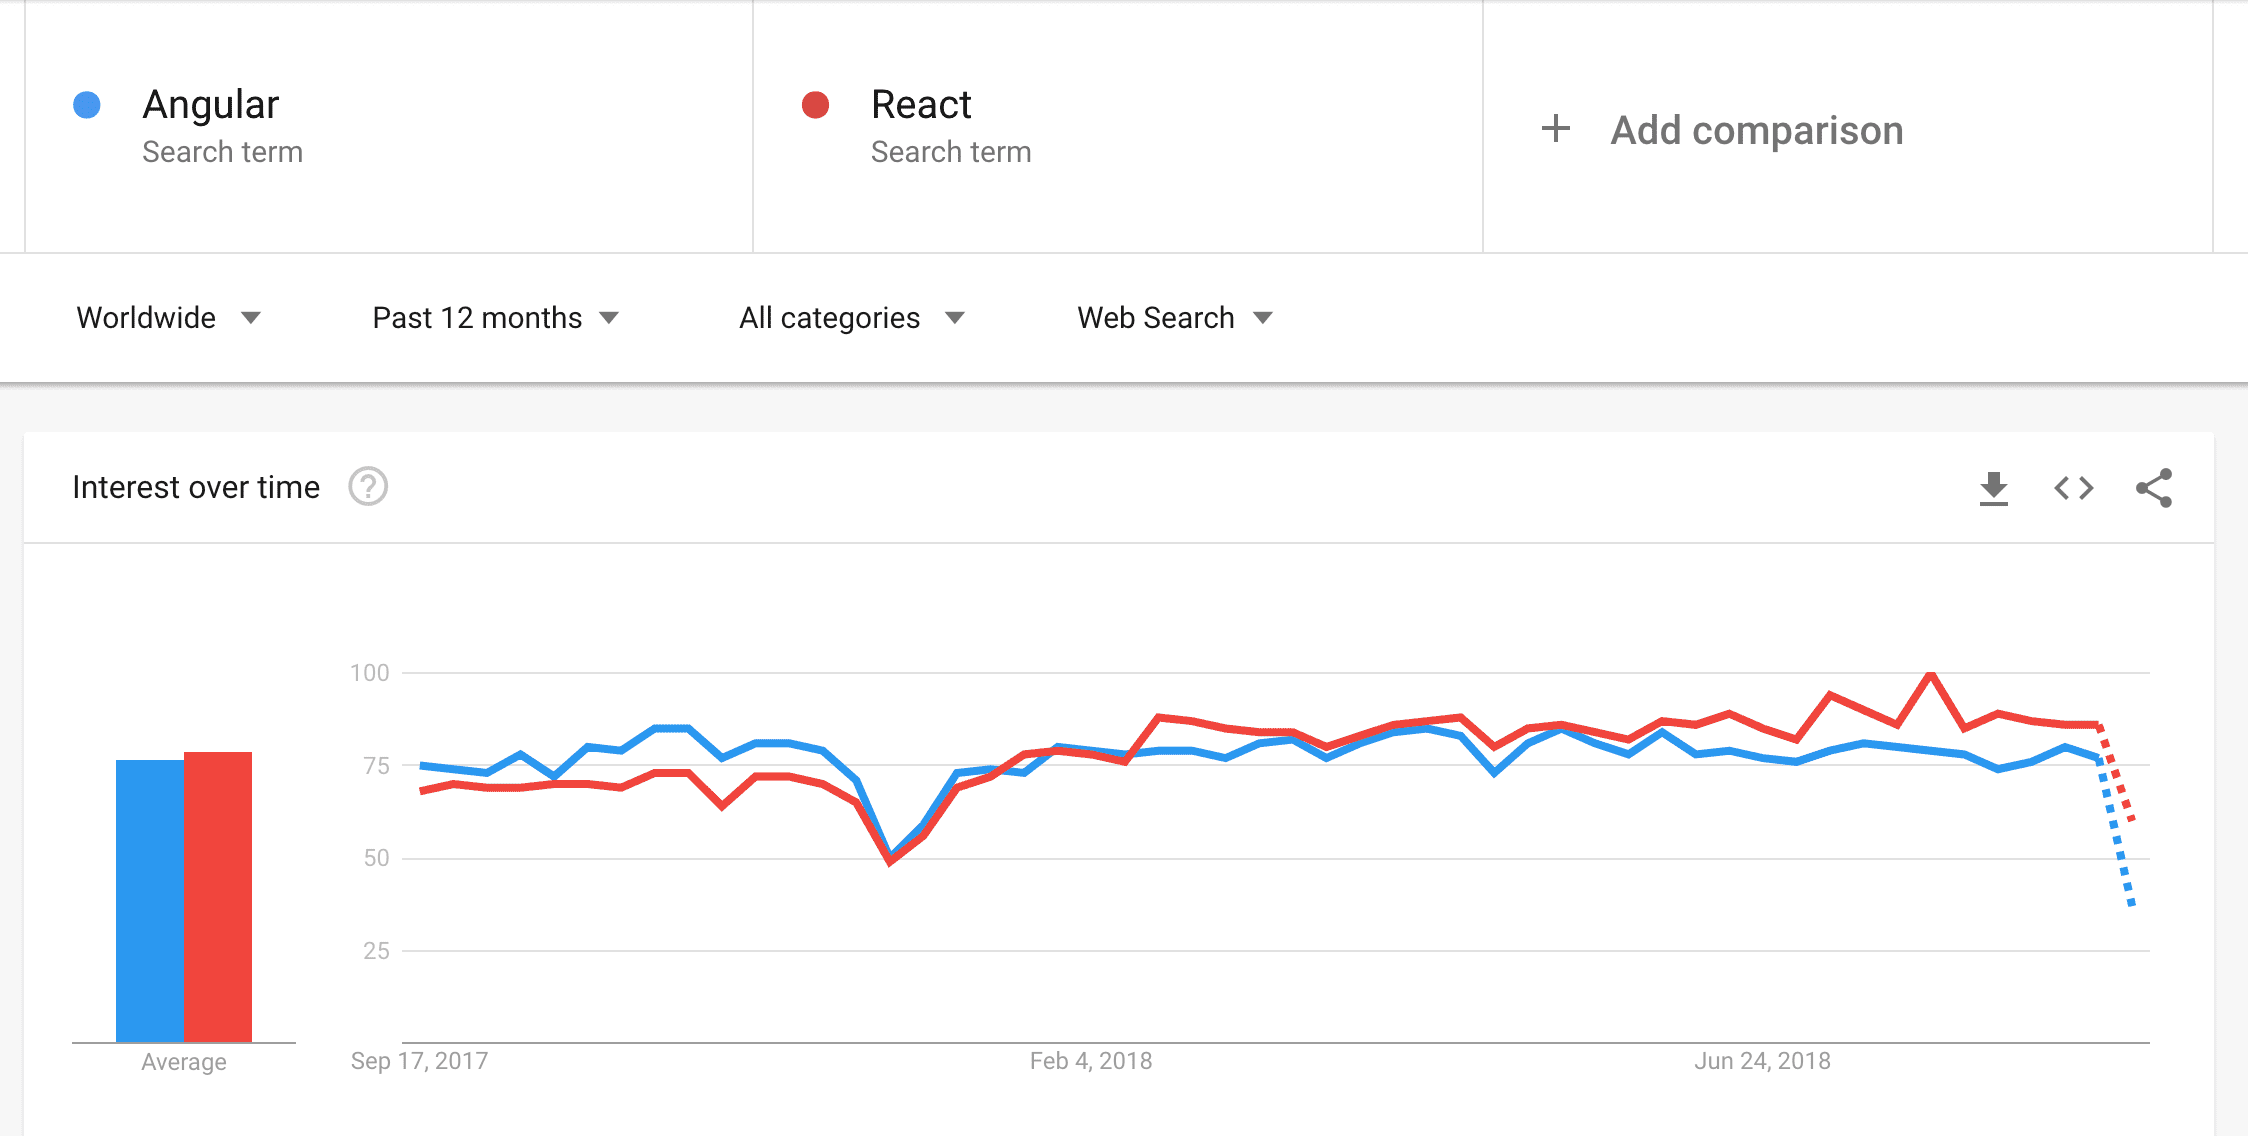 Angular and React in Google Trends